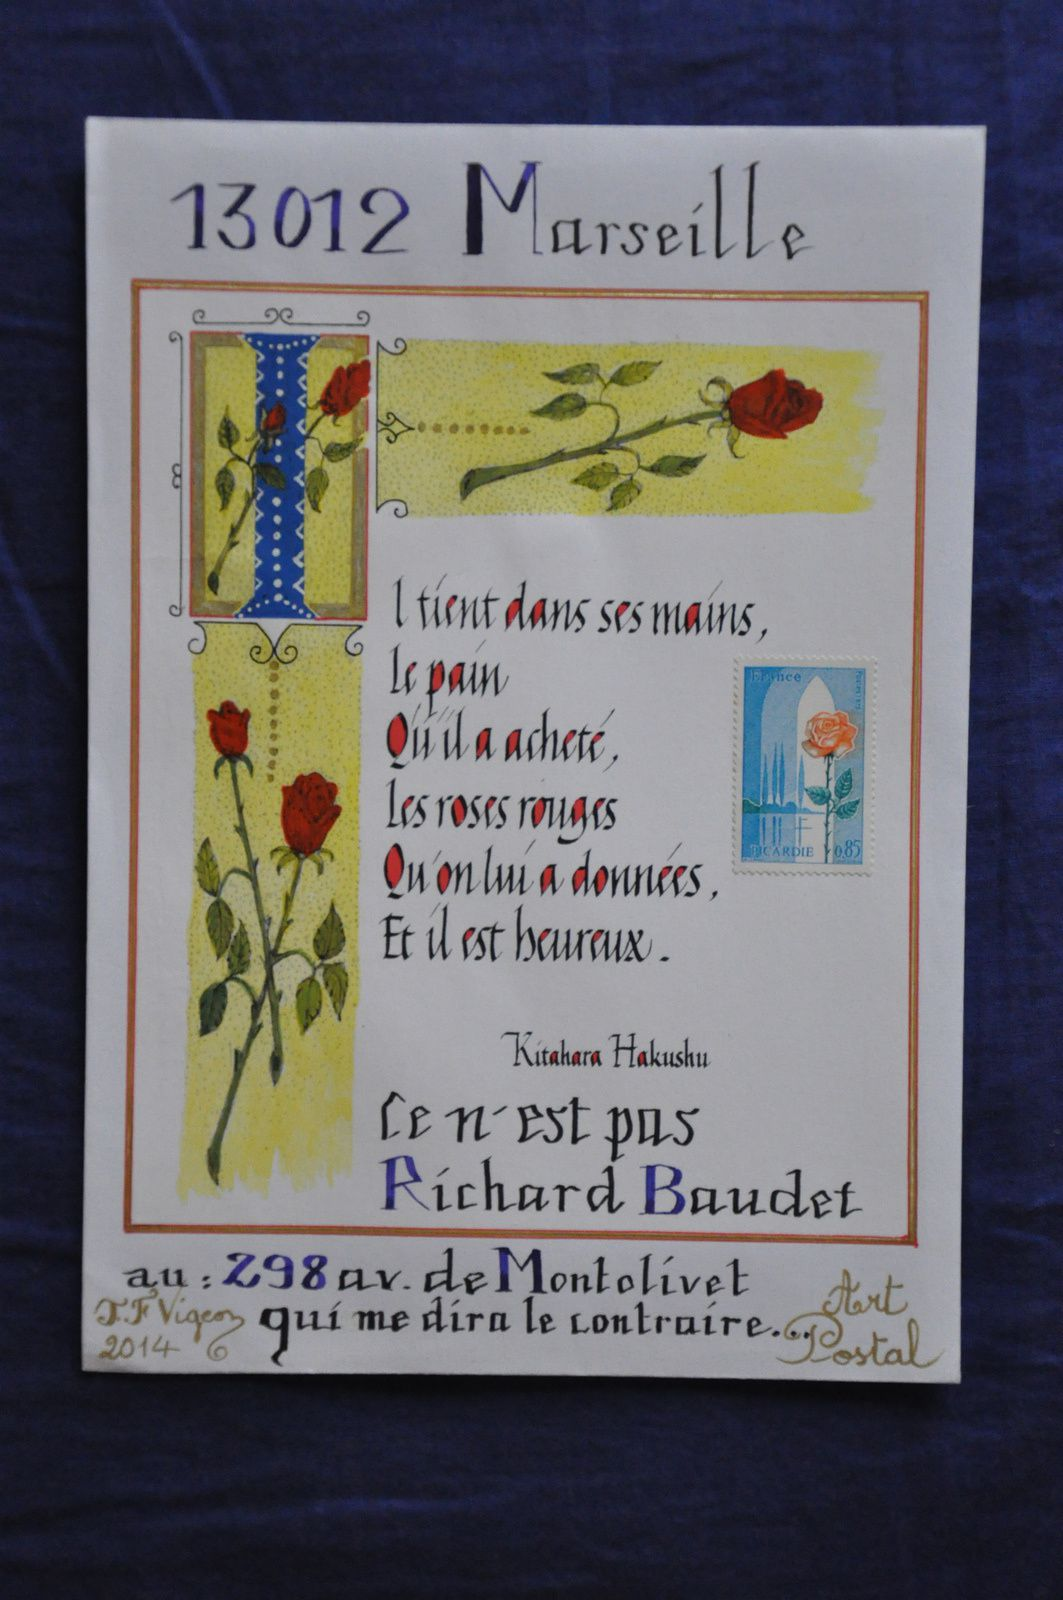 Une très belle citation pour Richard Baudet, calligraphe de talent!